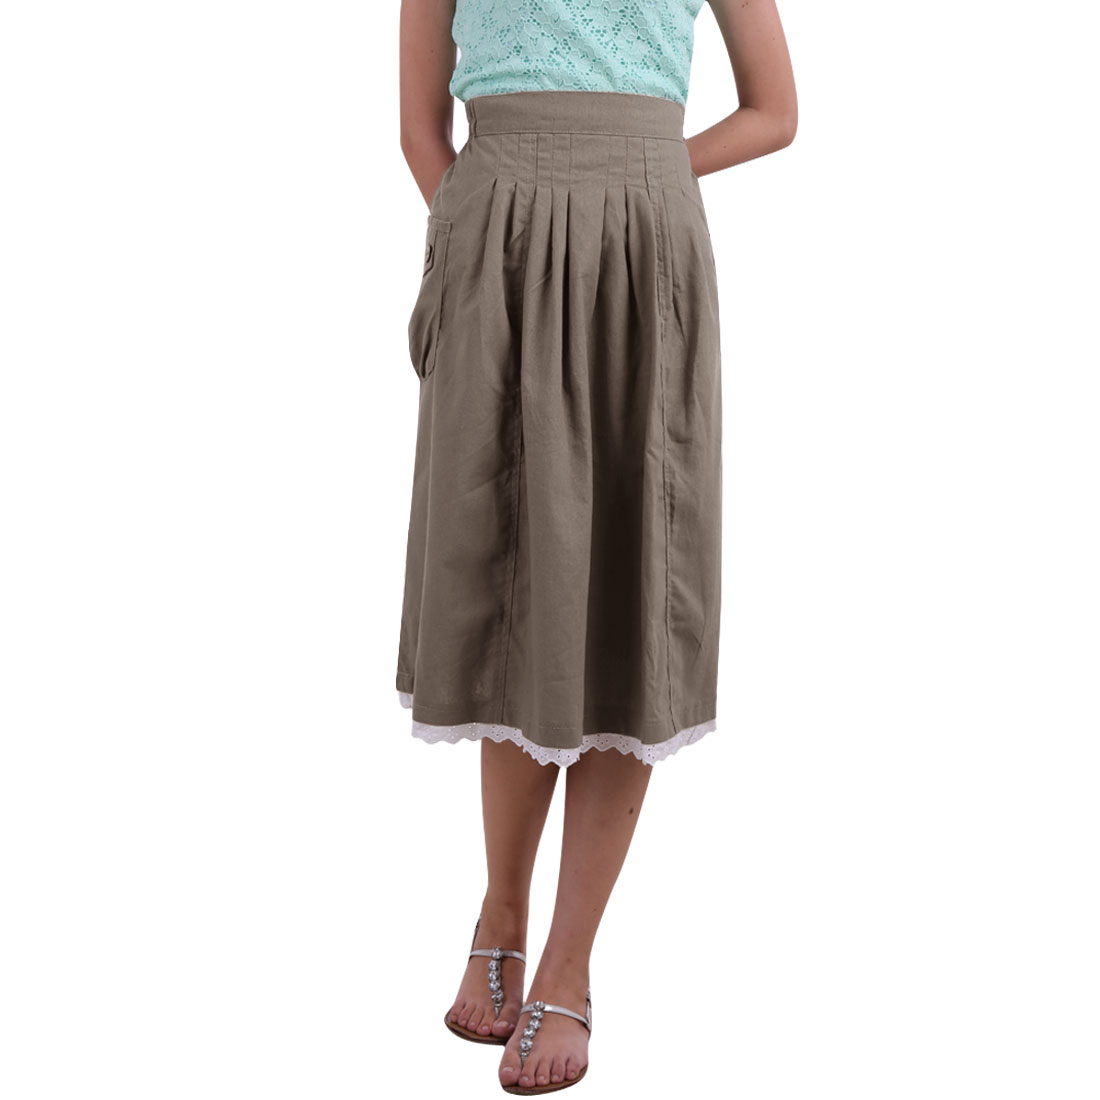 S Zip Fly Closure Two Side Pockets A-Line Flower Trim Skirt Khaki for Ladies